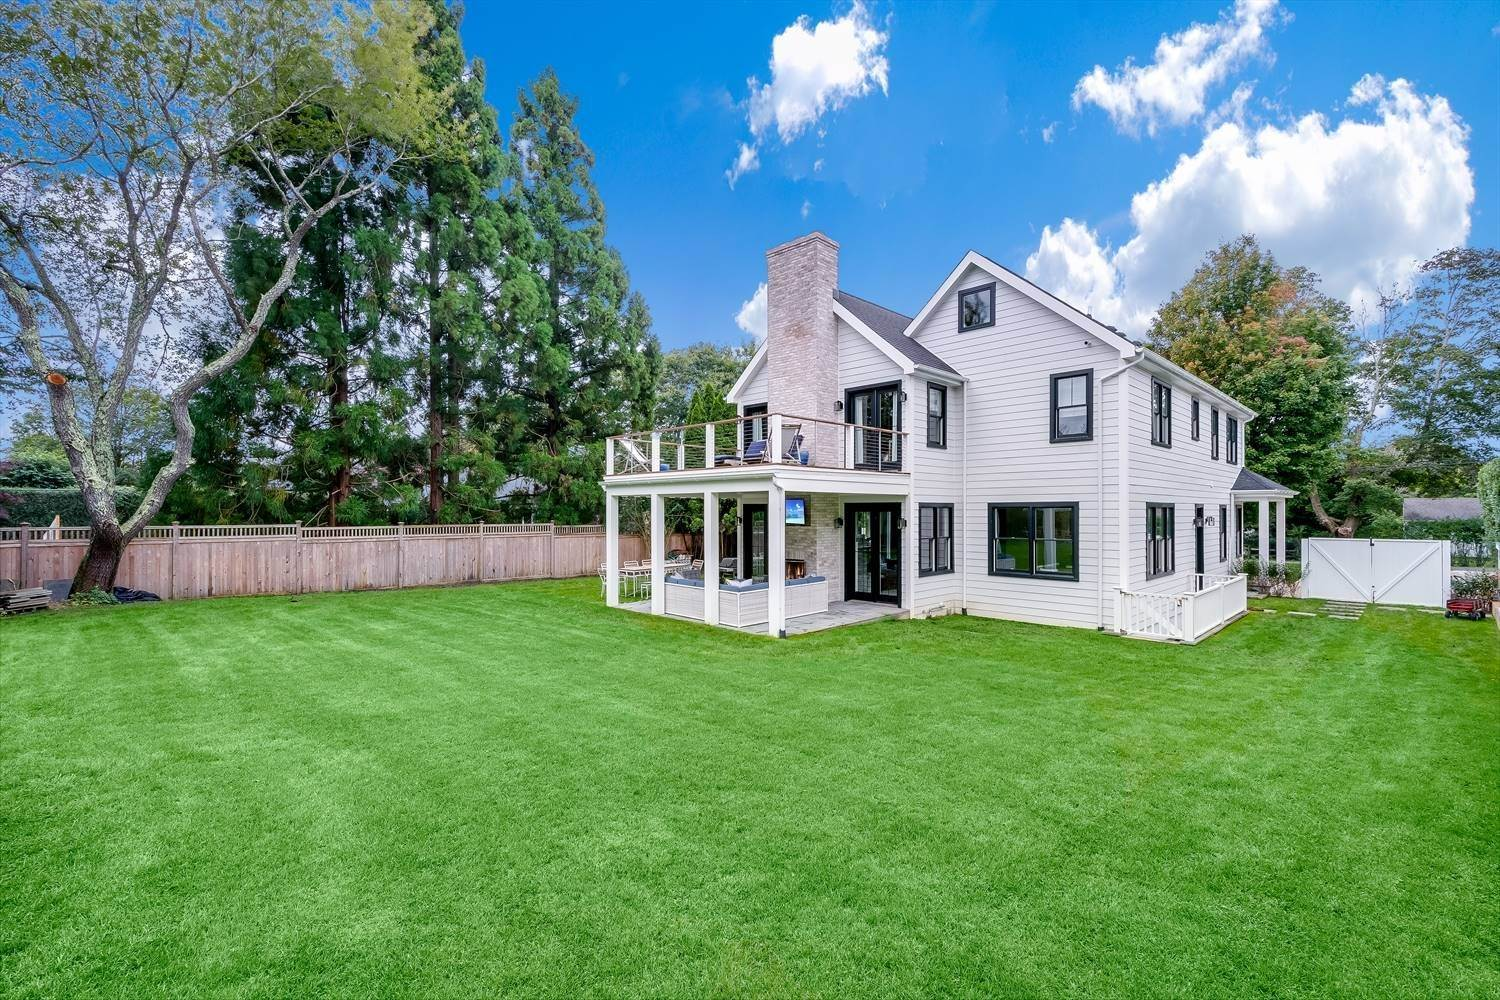 26. Single Family Home at Quintessential Hamptons Summer In Amagansett South 43 Hedges Lane, Amagansett, NY 11930